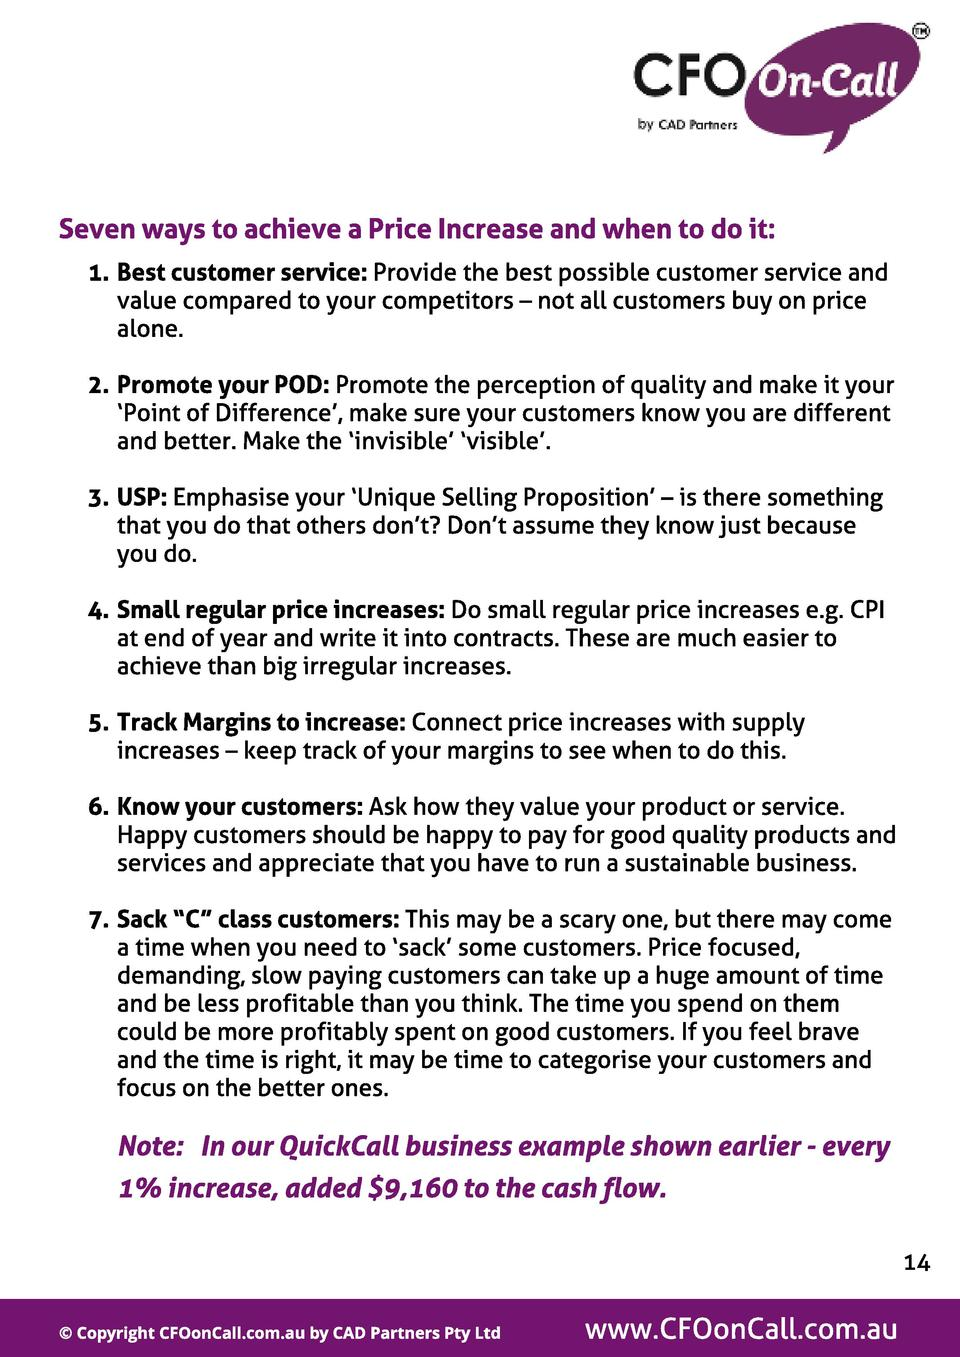 Seven ways t o achieve a Price Increase and when t o do it   1. Best cust omer service  Provide the best possible customer...